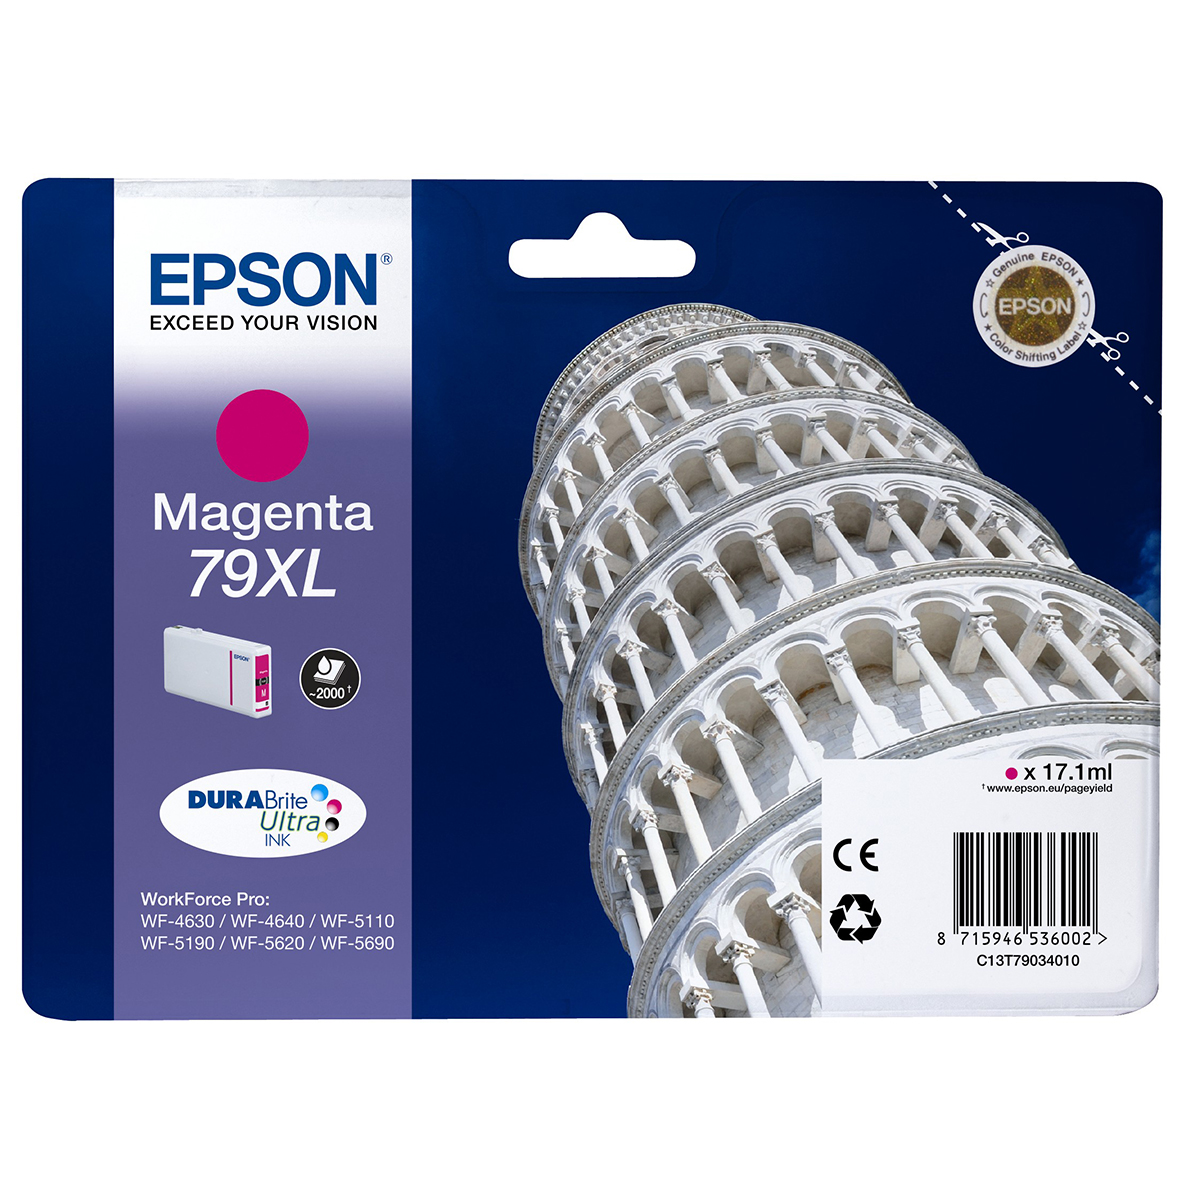 Epson 79XL Ink Cartridge Magenta